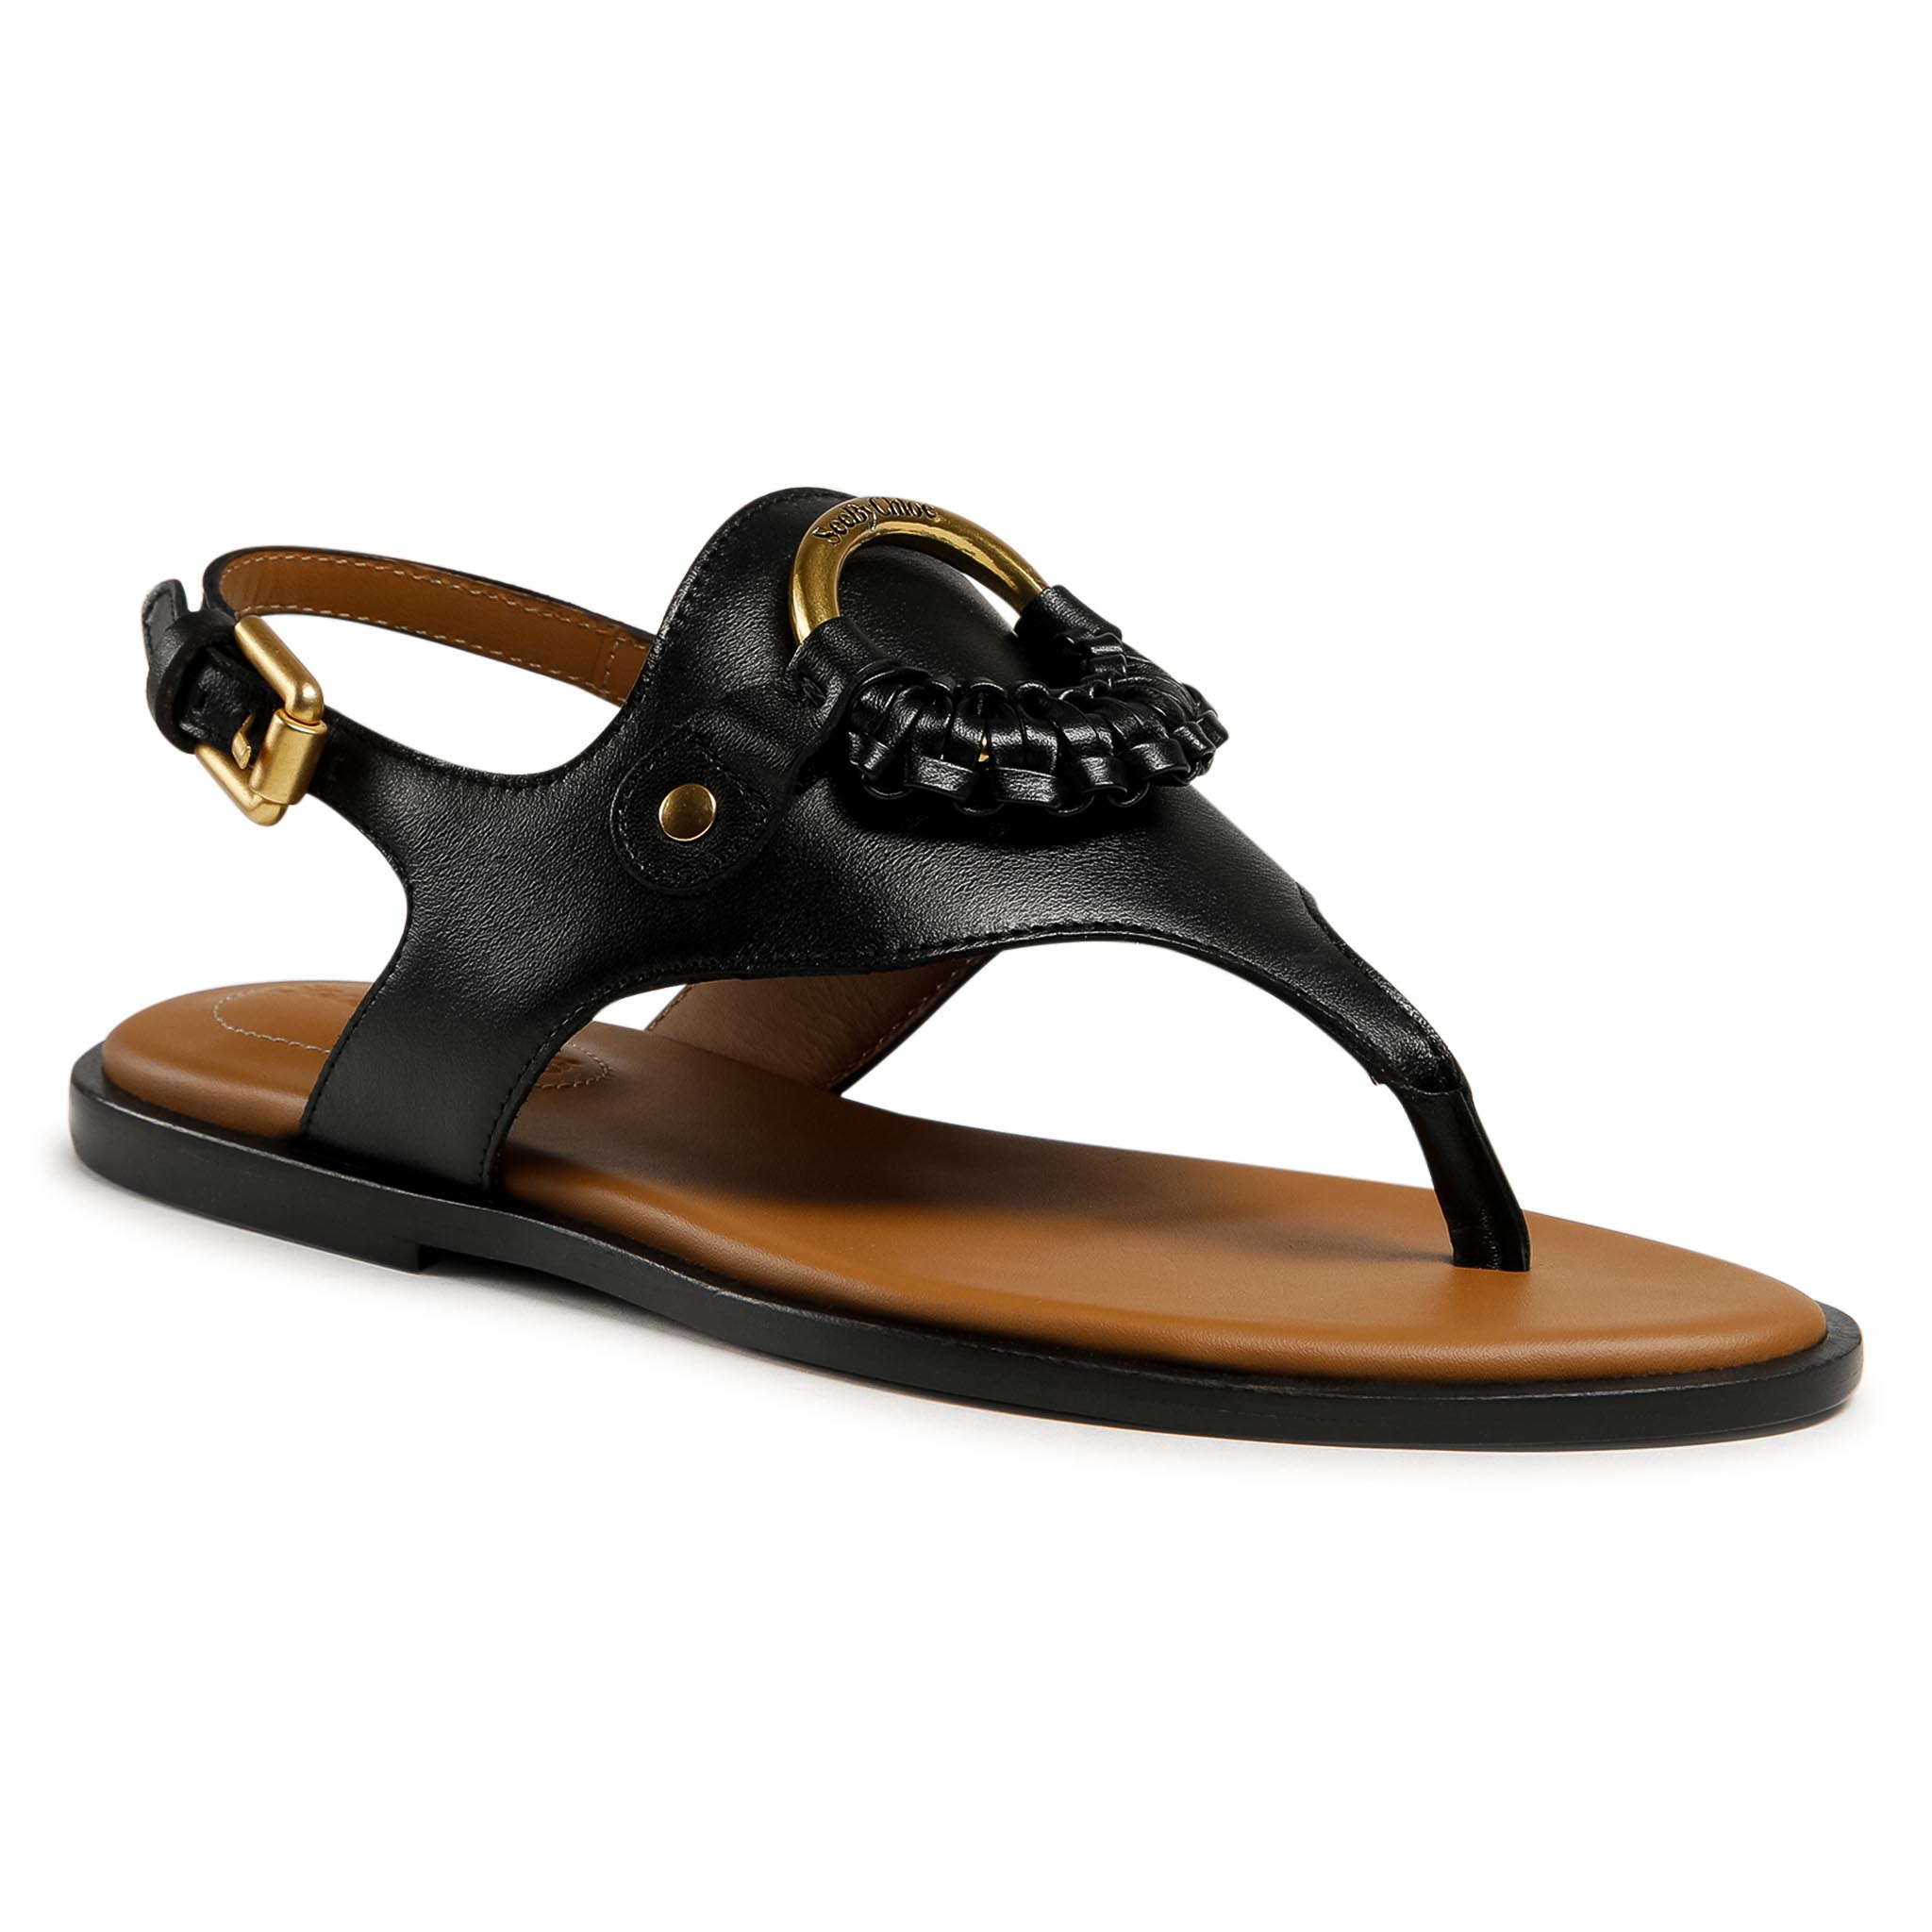 Image of Sandali SEE BY CHLOÉ - SB36131A Blk 999